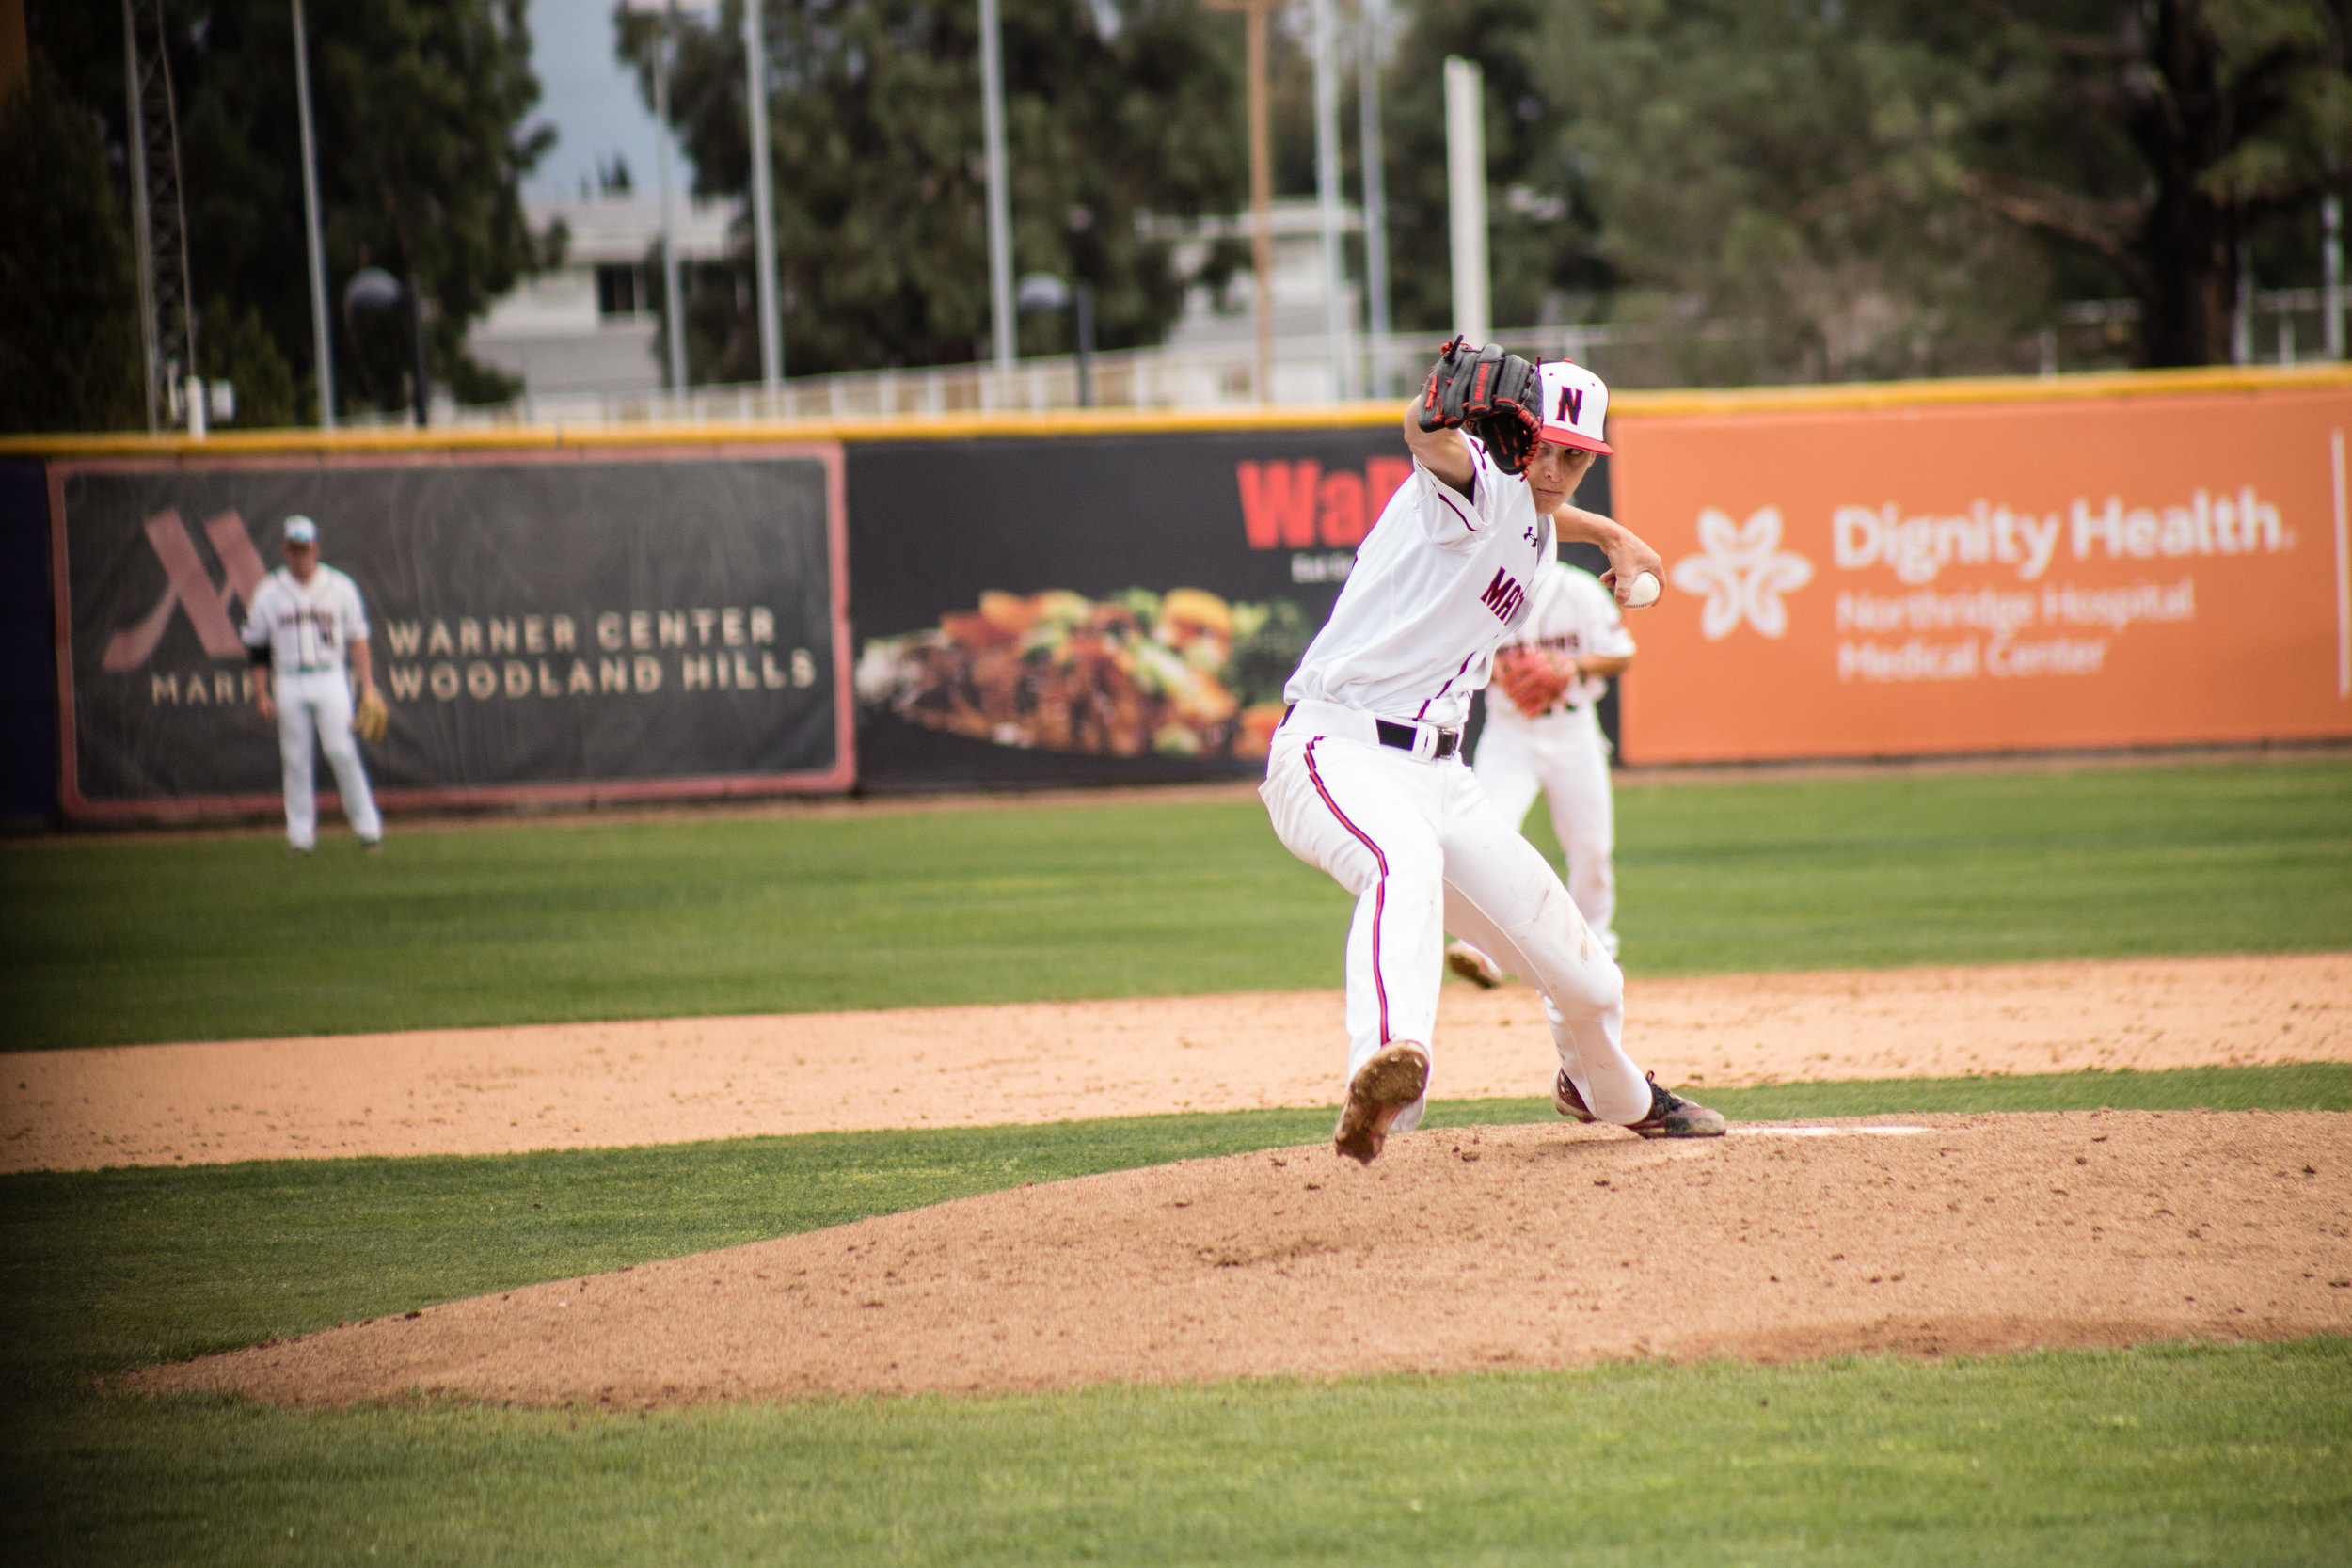 2018_03_11 - Baseball vs Pepperdine (max reso)-3.jpg